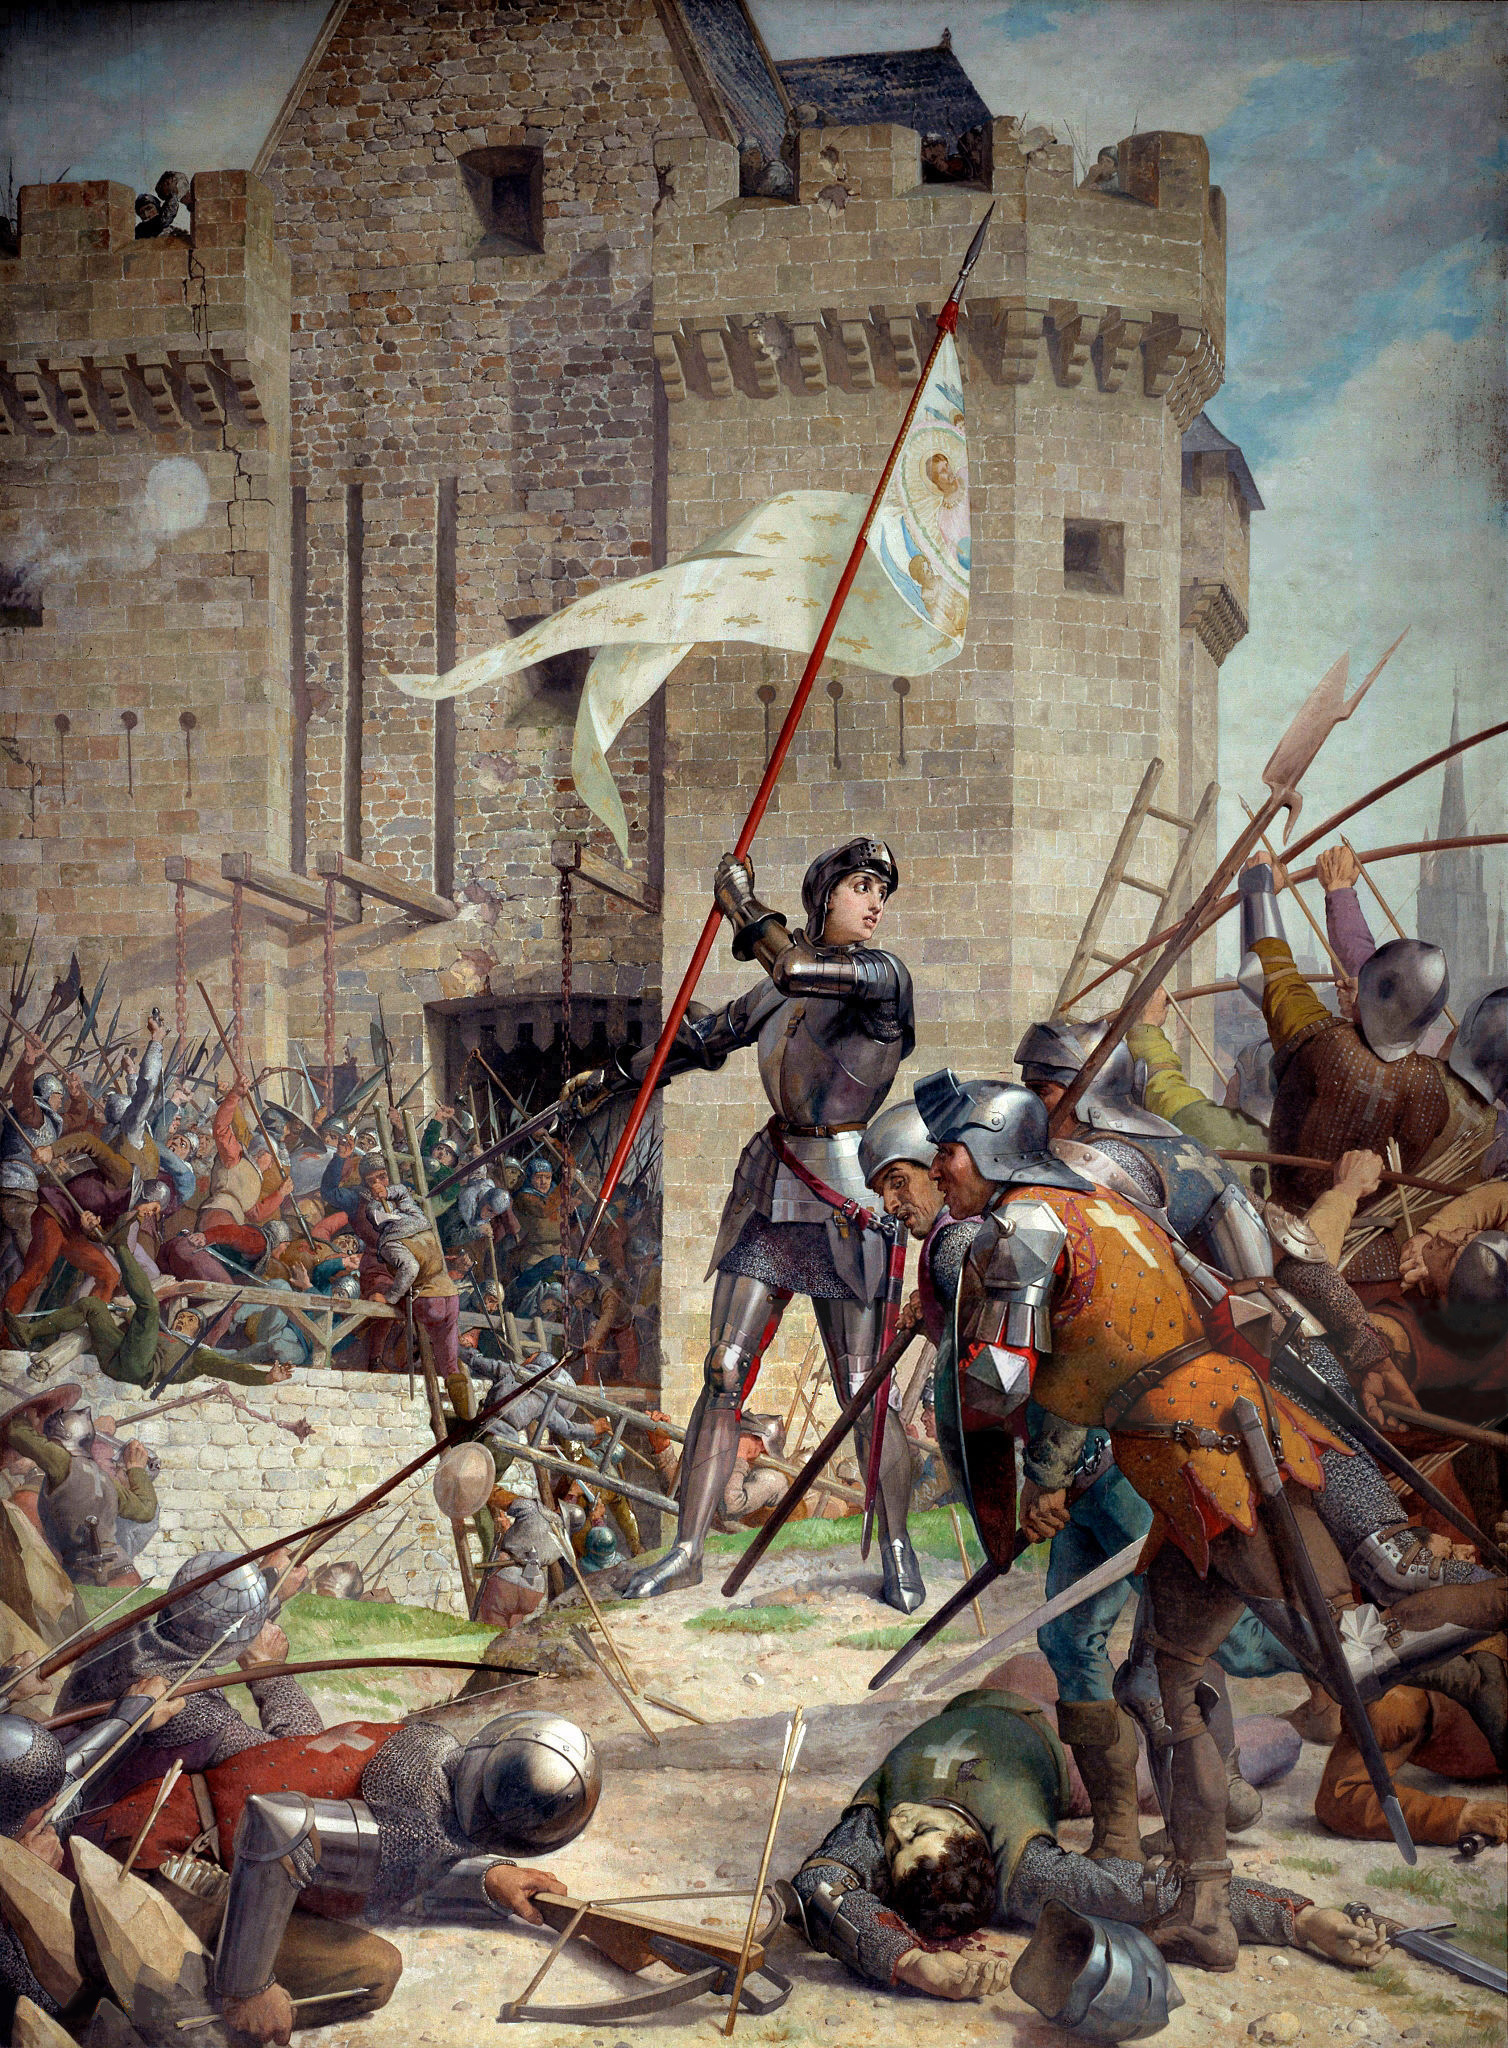 Jeanne d'Arc at the Siege of Orléans by Jules Eugène Lenepveu, painted 1886–1890.